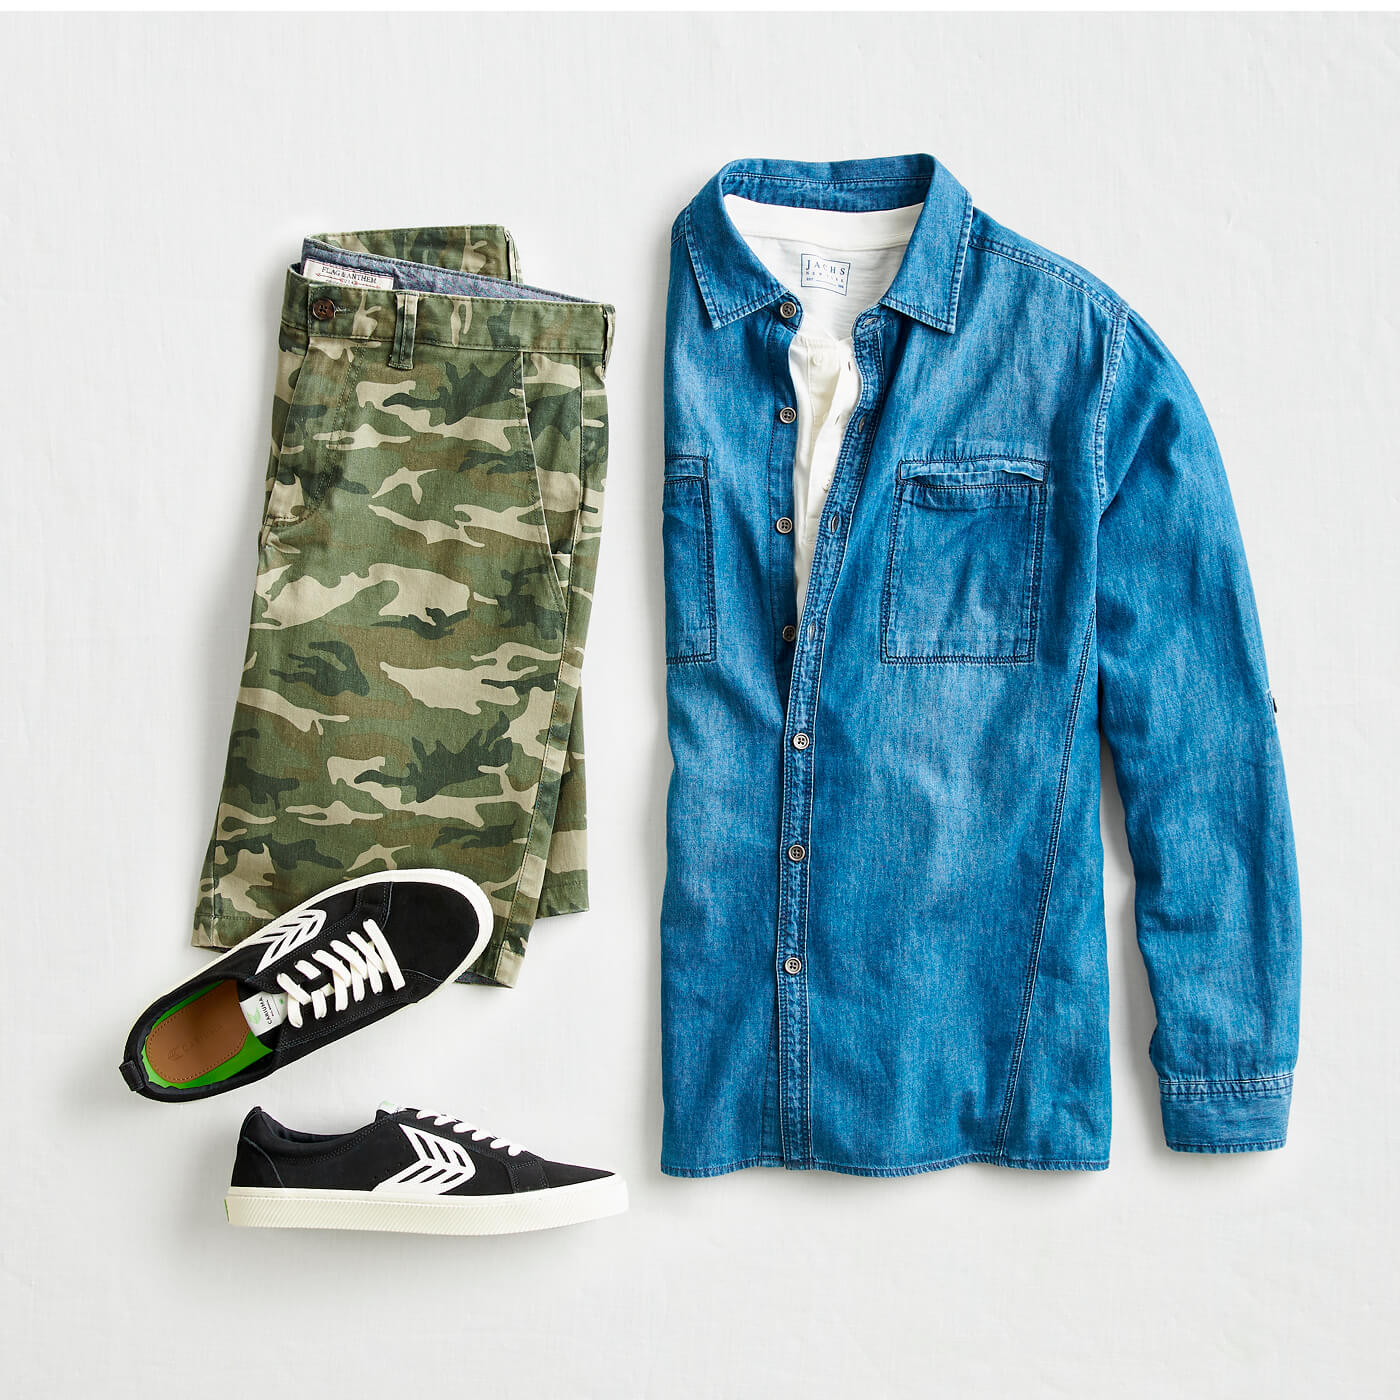 sneakers with camo shorts and chambray shirt